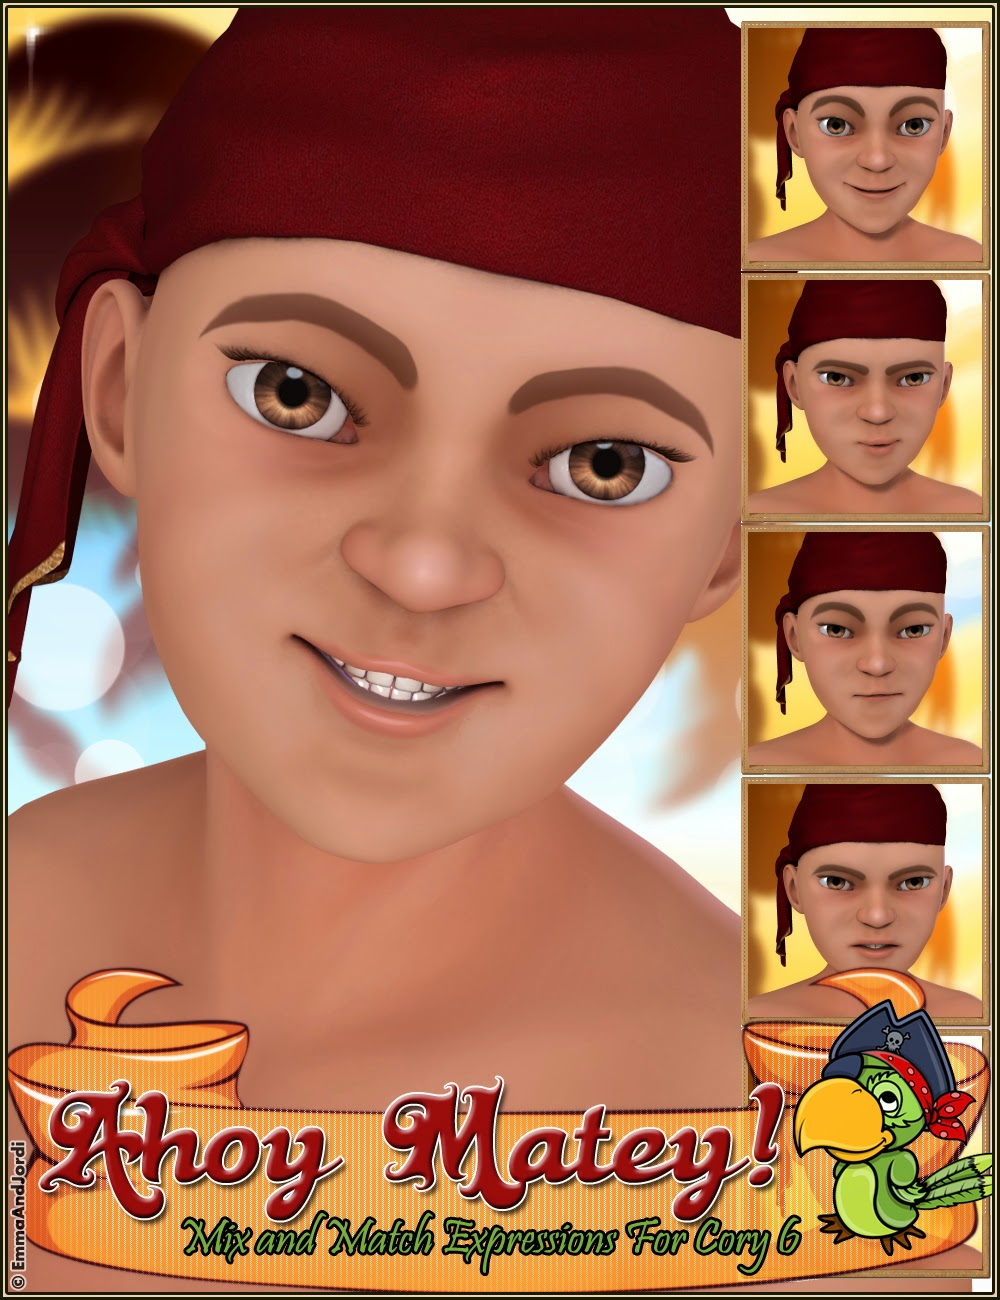 http://www.daz3d.com/ahoy-matey-mix-and-match-expressions-for-cory-6